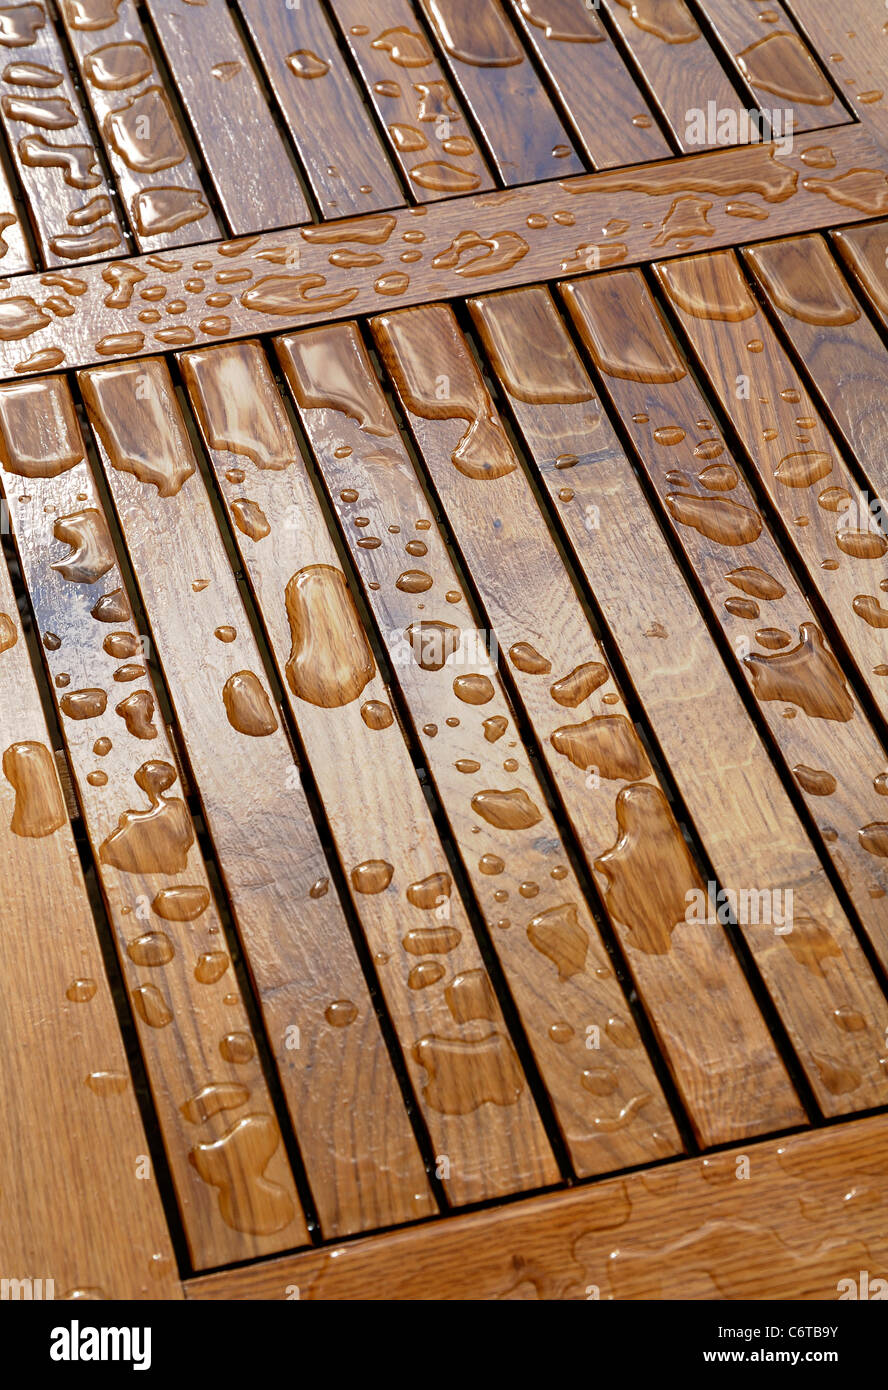 raindrops on wooden garden table - Stock Image